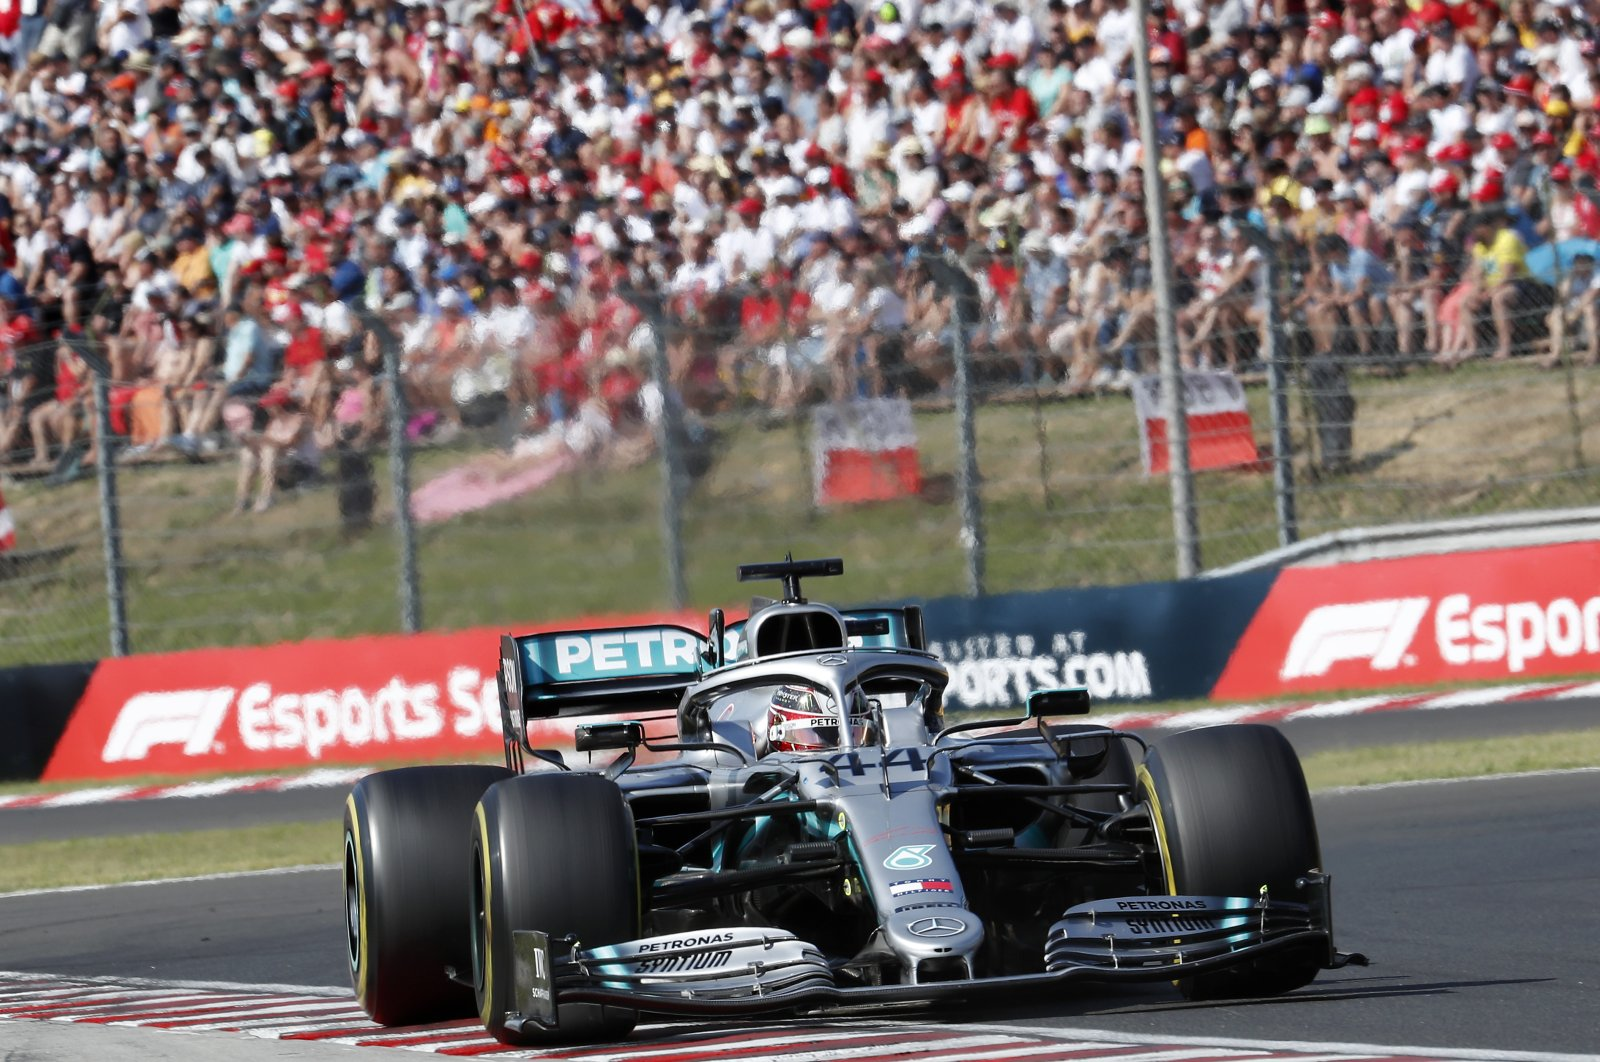 Mercedes driver Lewis Hamilton during the Hungarian GP in Mogyorod, Hungary, Aug. 4, 2019. (AP Photo)